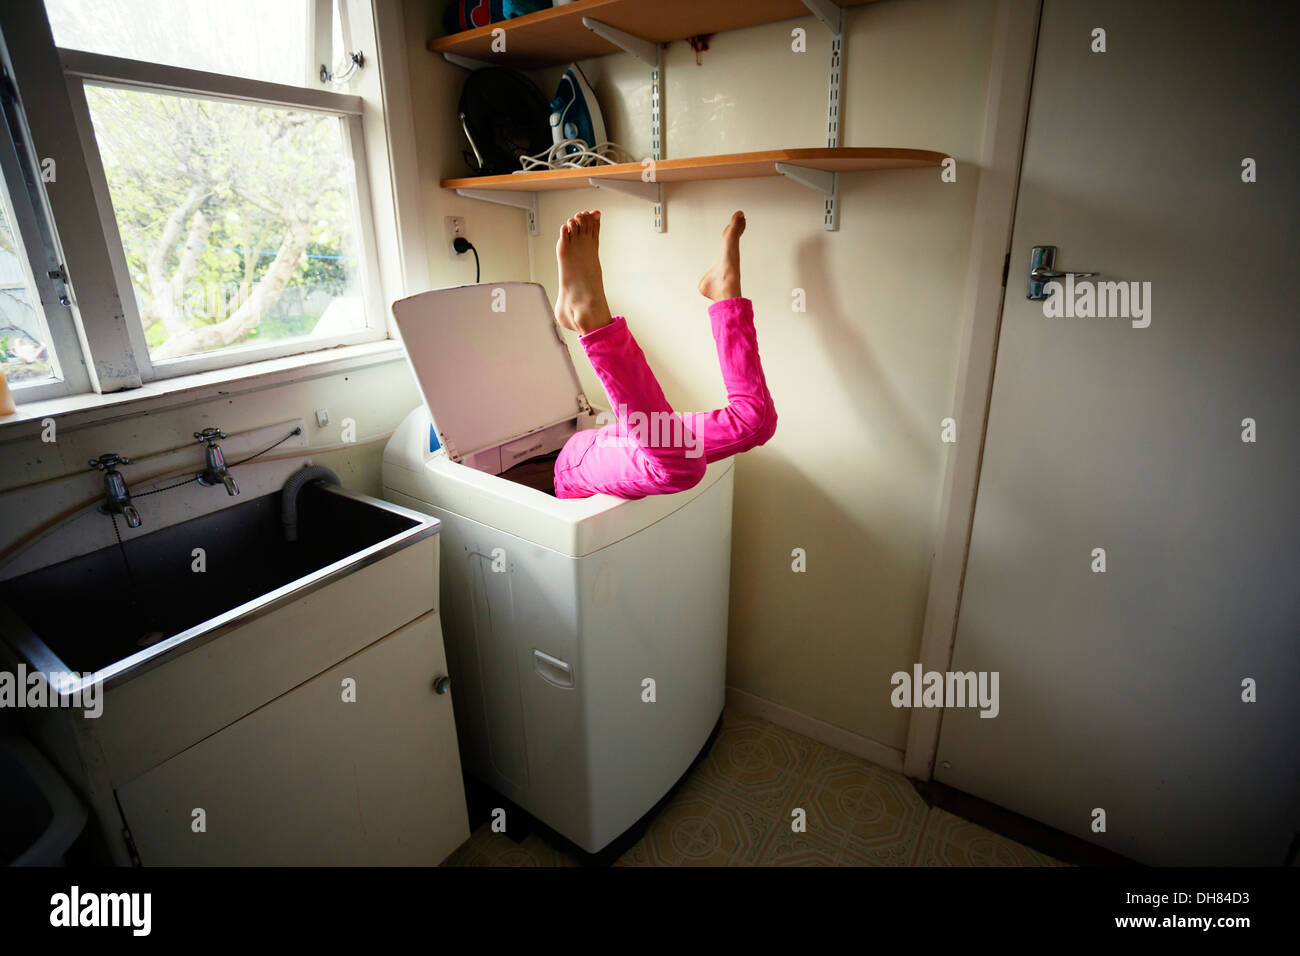 Laundry room accident - Stock Image